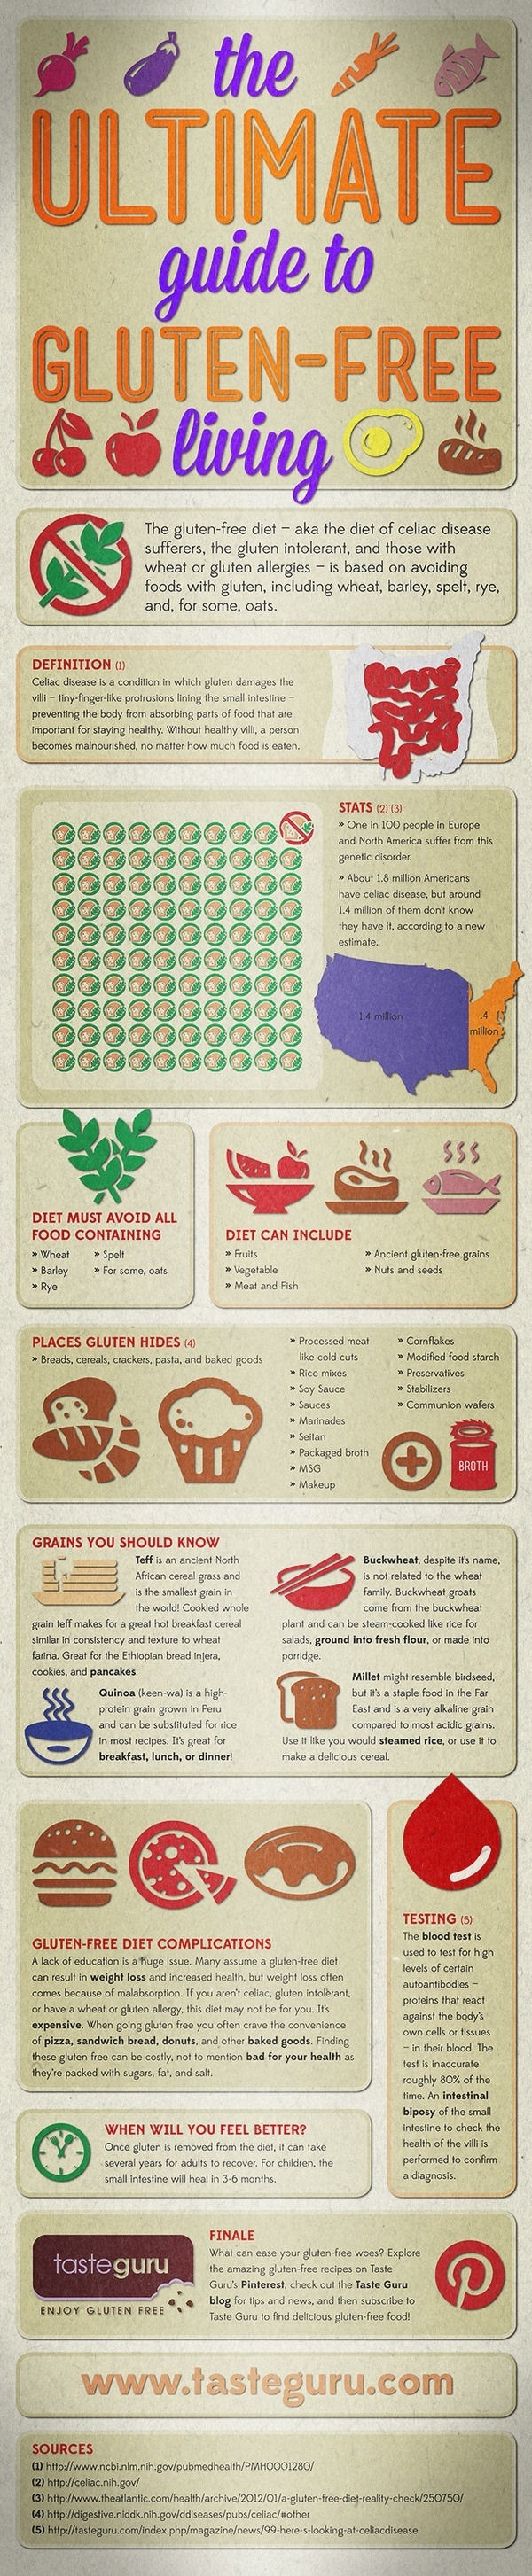 The Ultimate Guide to GlutenFree Living by TasteGuru